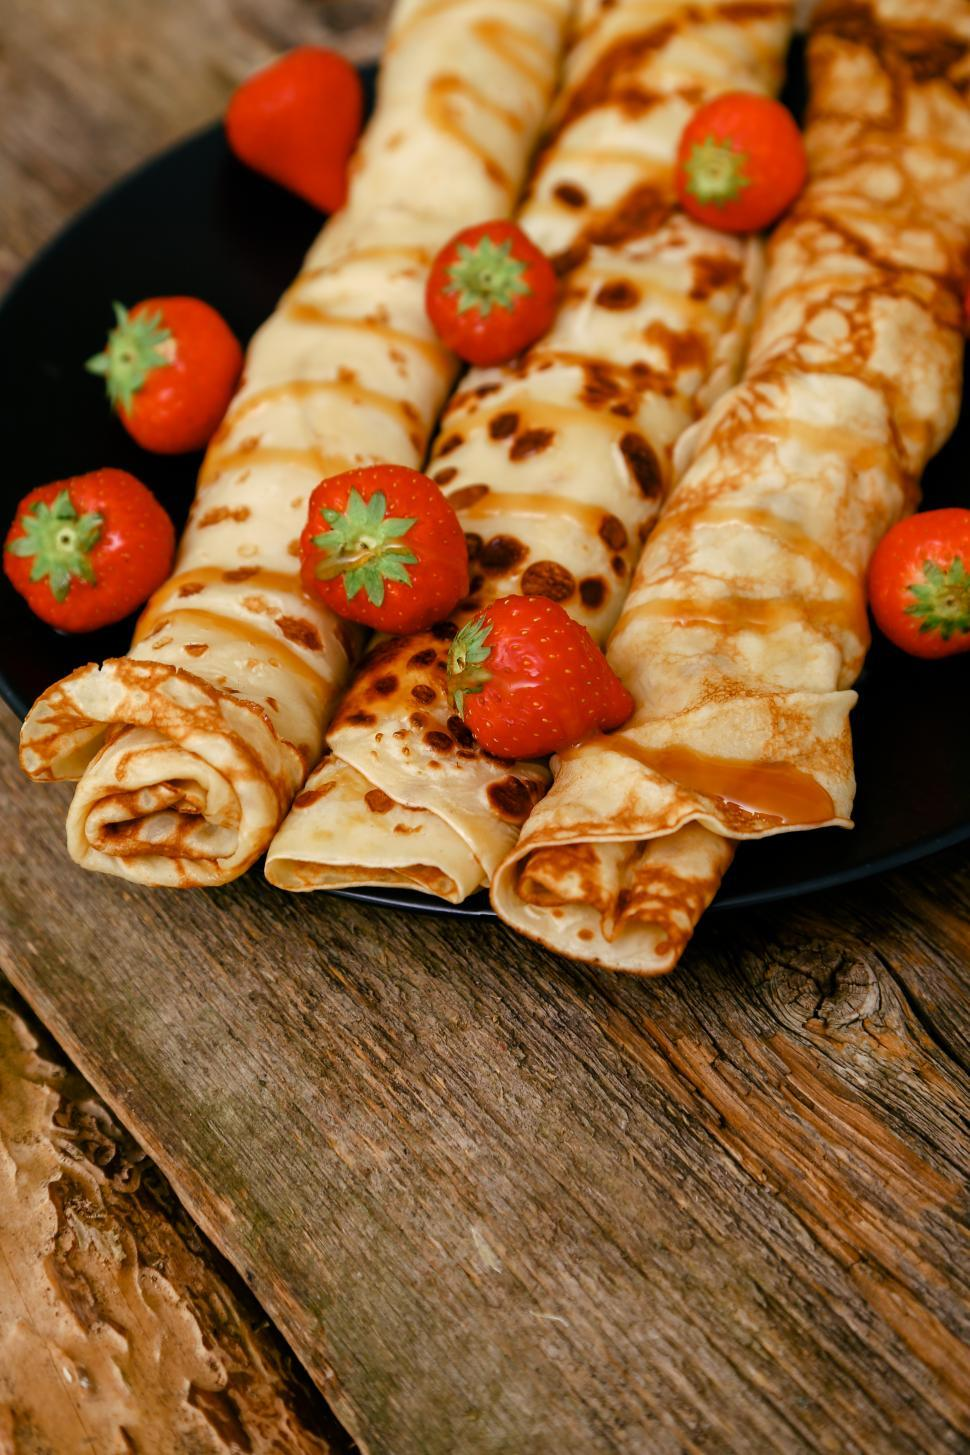 Download Free Stock HD Photo of Homemade pancakes - blinis rolled with fruit Online